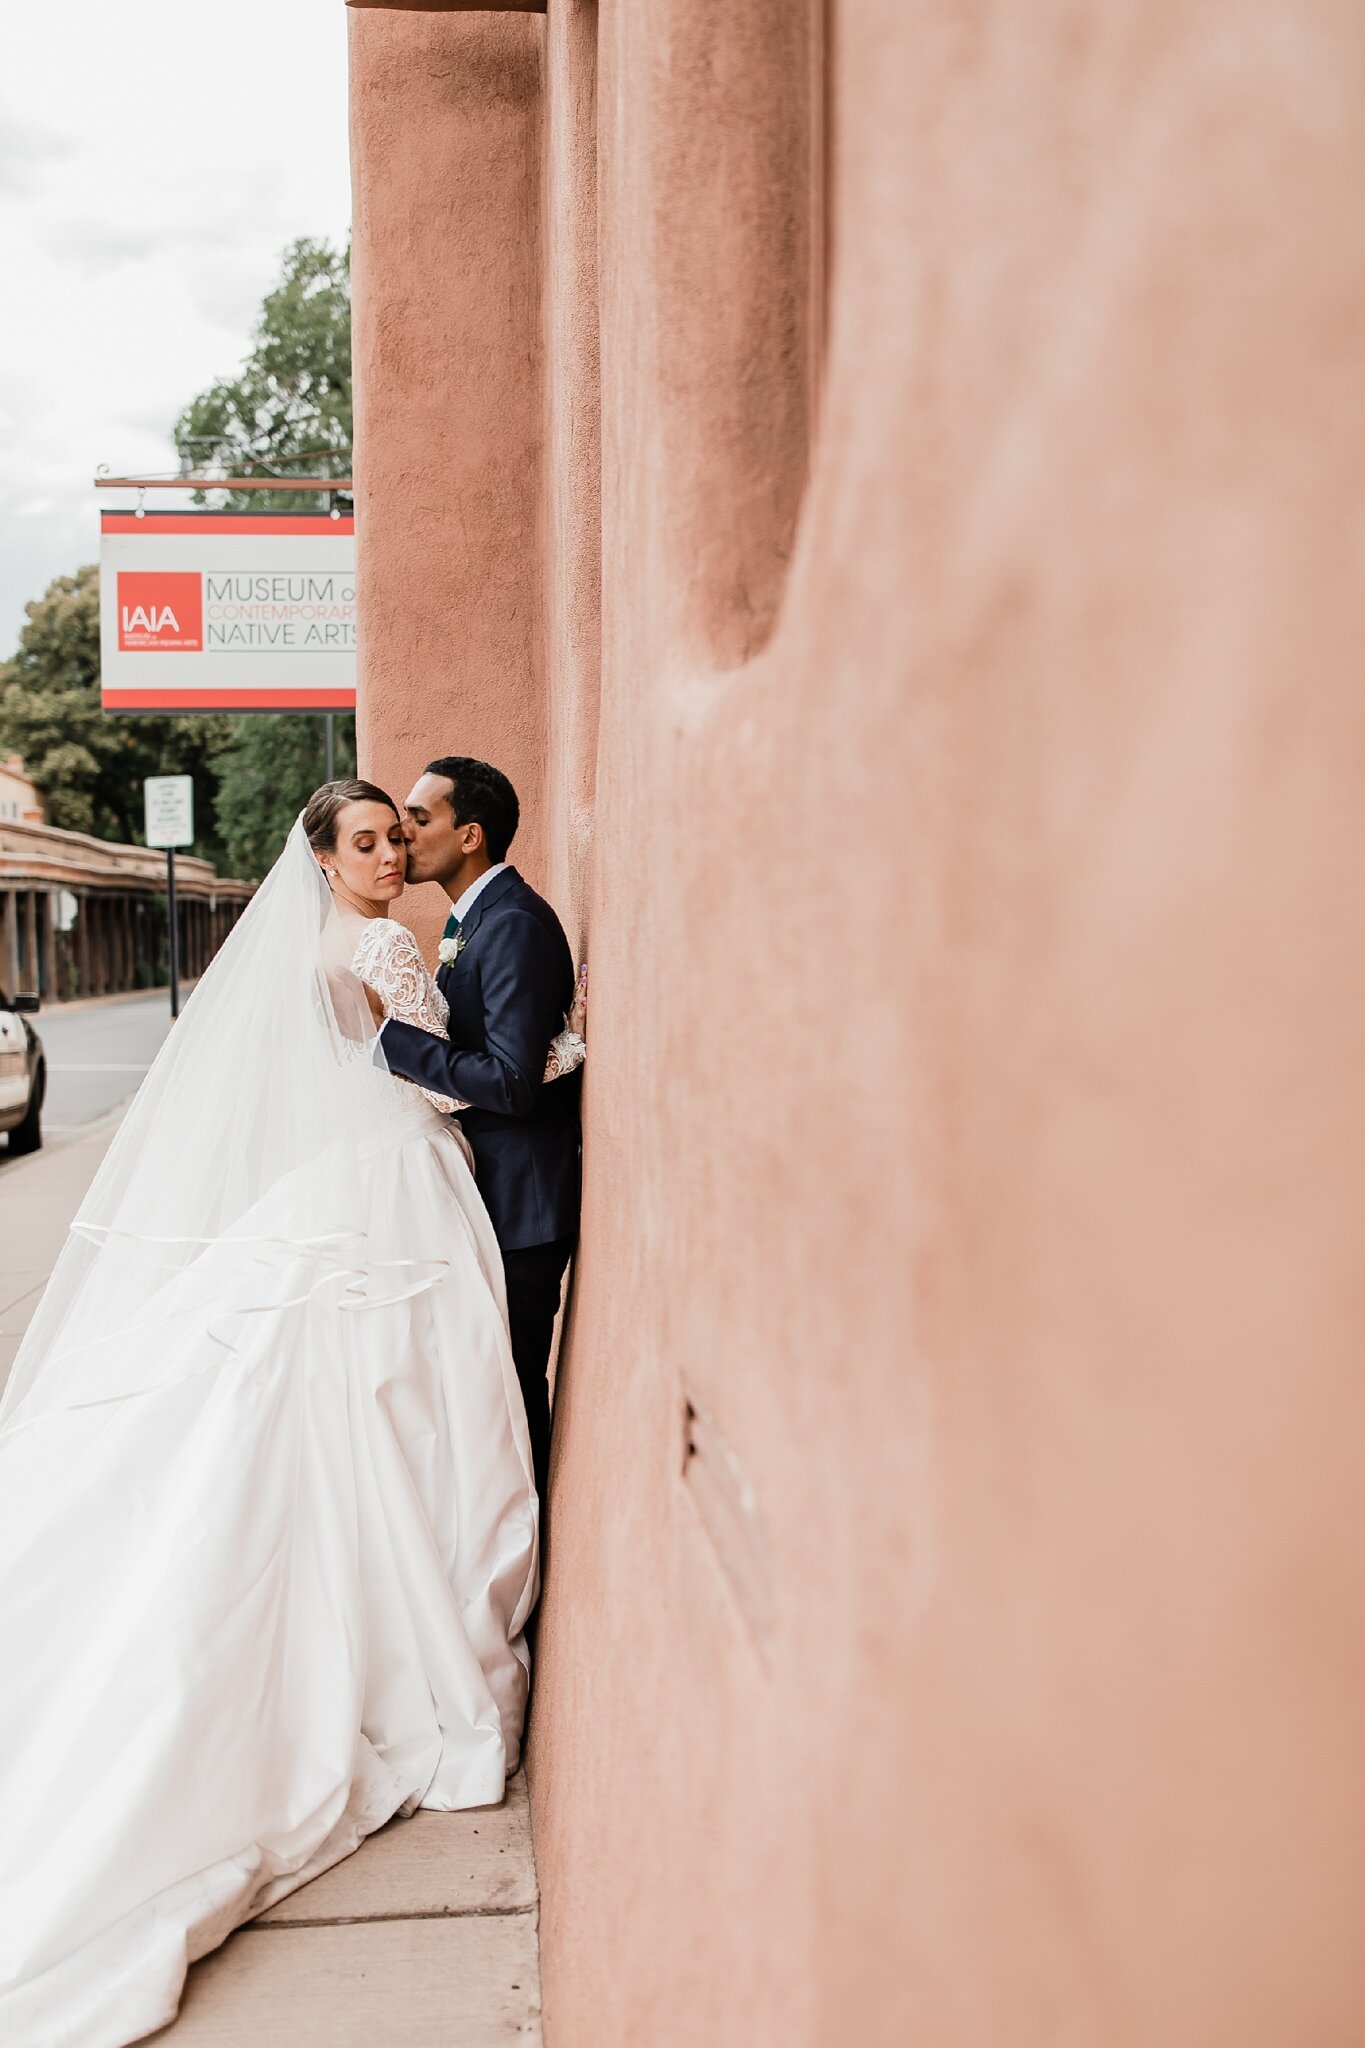 Alicia+lucia+photography+-+albuquerque+wedding+photographer+-+santa+fe+wedding+photography+-+new+mexico+wedding+photographer+-+new+mexico+wedding+-+hindu+wedding+-+catholic+wedding+-+multicultural+wedding+-+santa+fe+wedding_0084.jpg